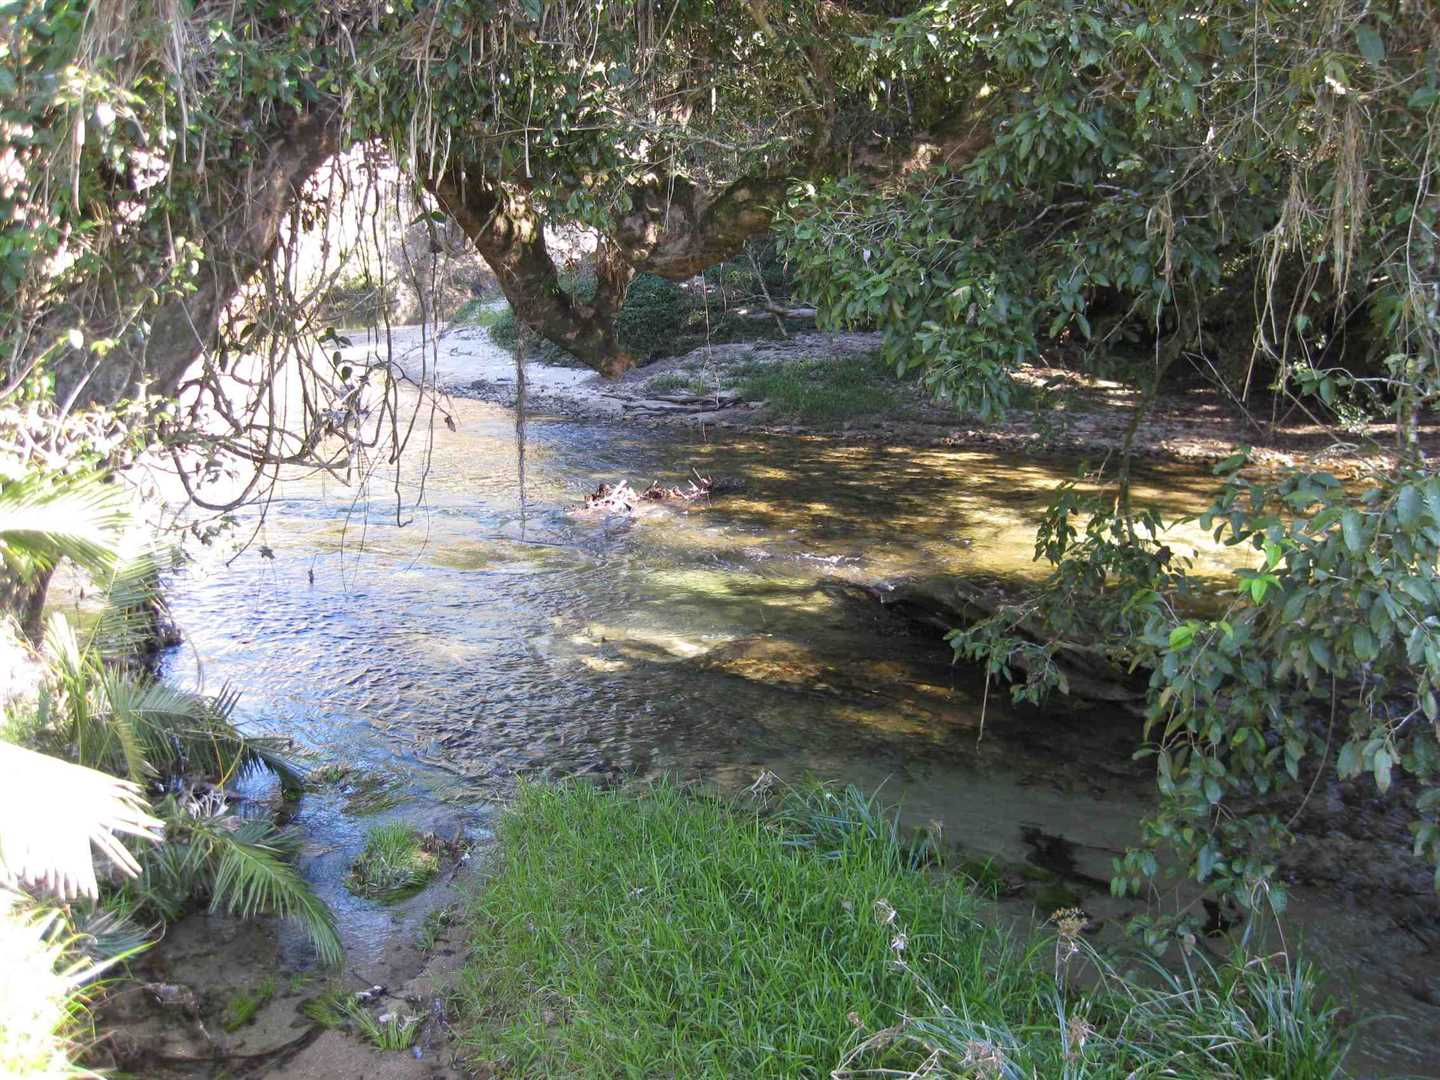 View of part of creek adjoining the property, photo 4